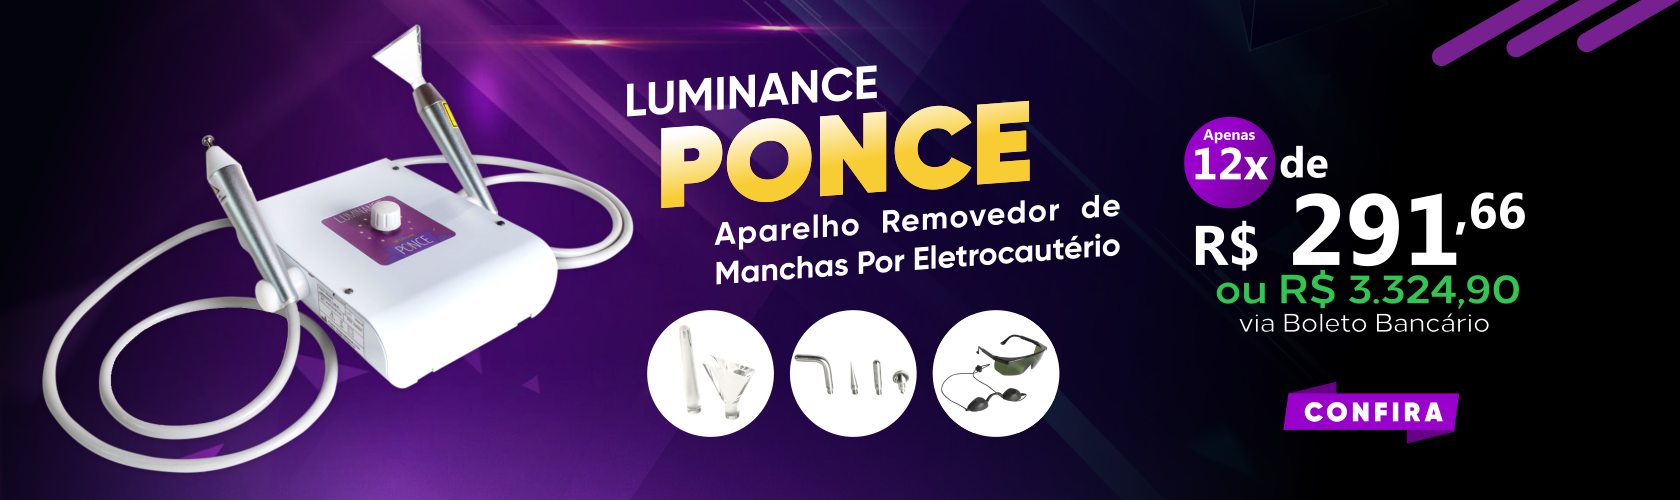 Luminance Ponce